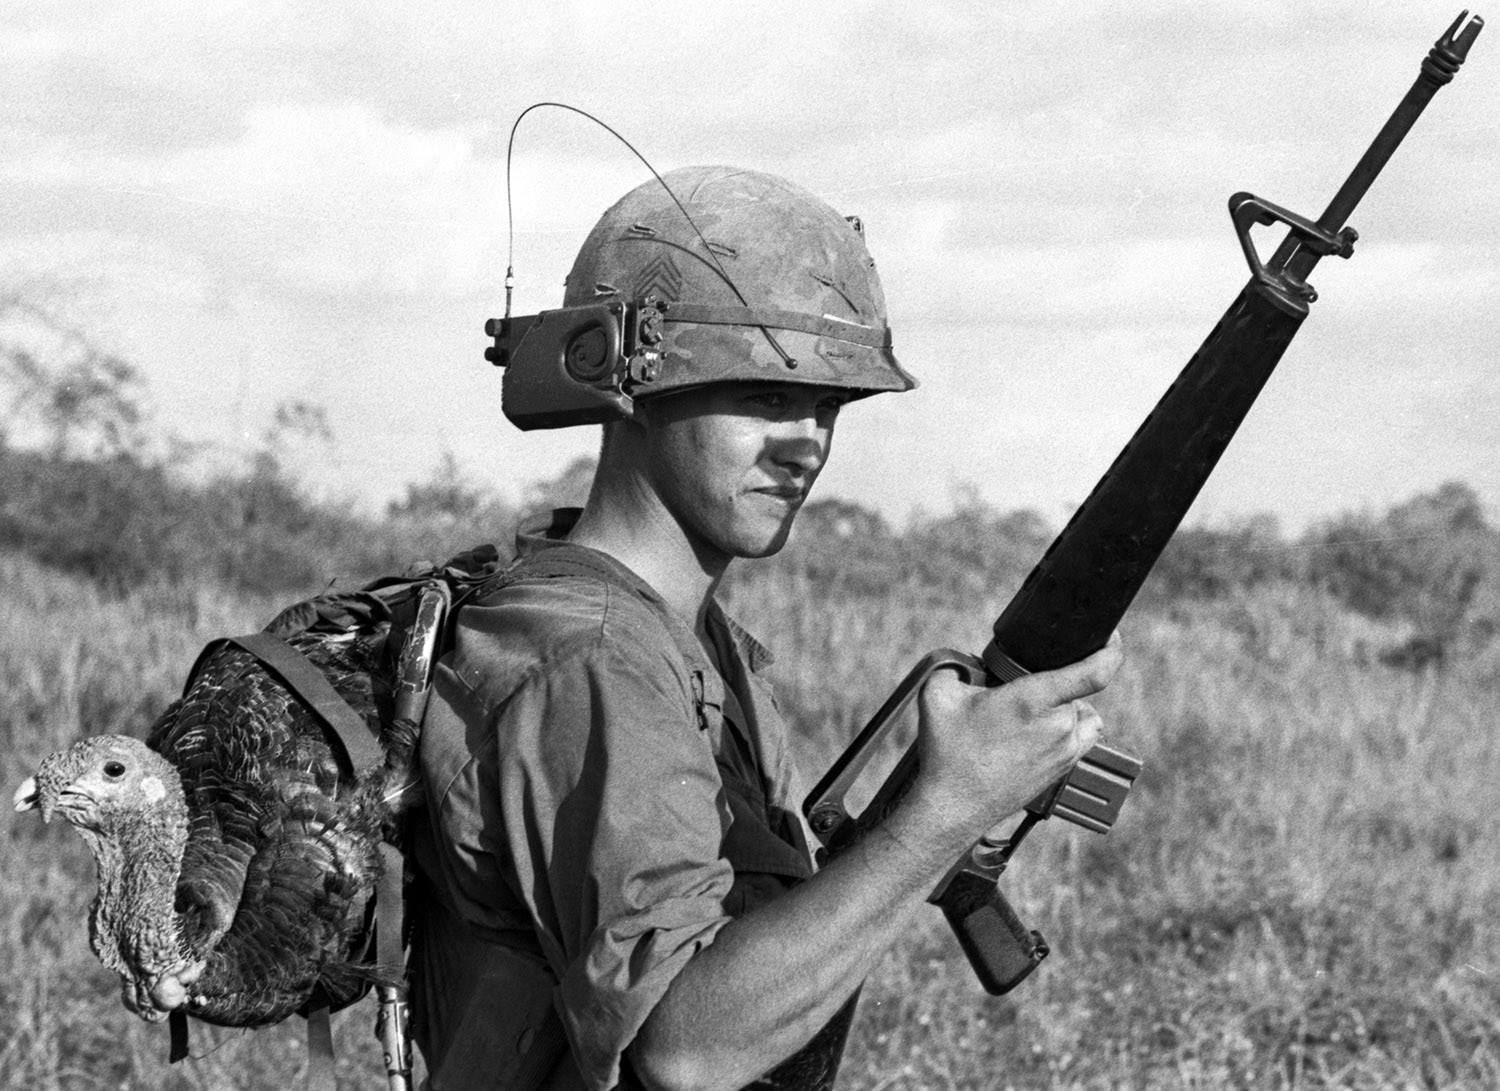 """""""South Vietnam, November, 1967 SSG Raymond Scherz of Addison, Ill., C Company, 2nd Battalion, 39th Infantry, 9th Infantry Division's Thanksgiving dinner at the nearby Bear Cat base camp"""""""